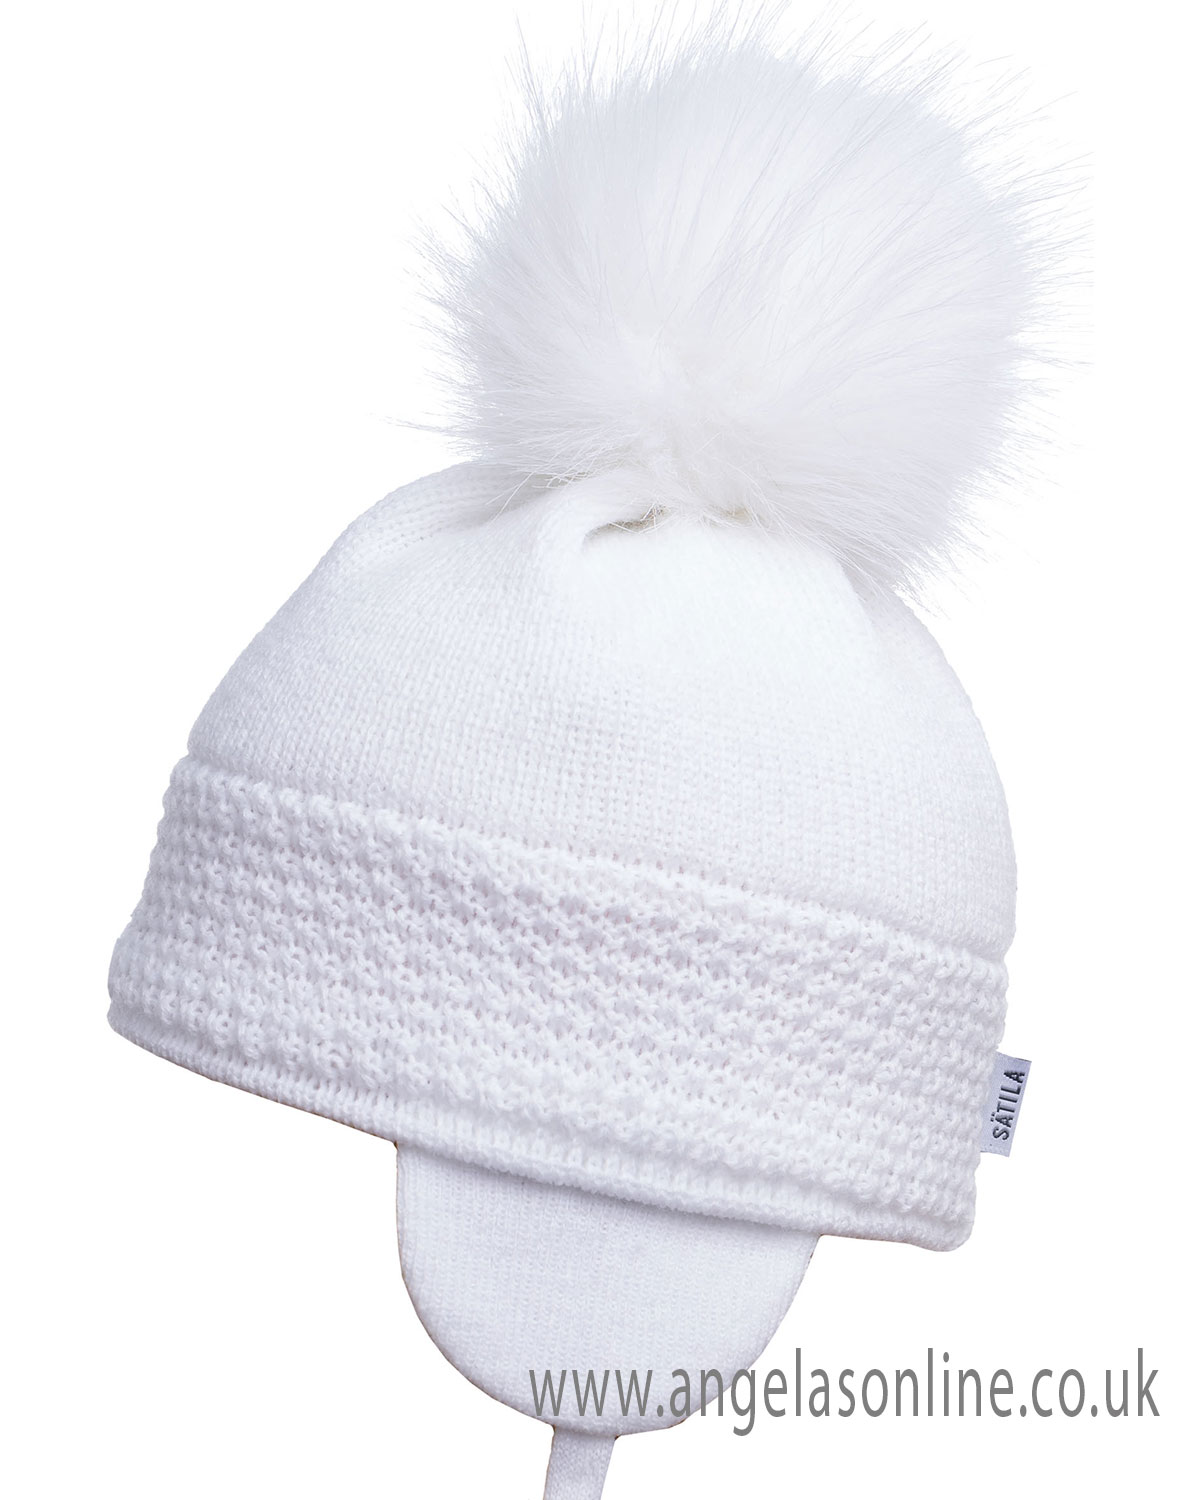 574115f294e Satila unisex baby hat with knitted embroidery and pom pom Daisy White